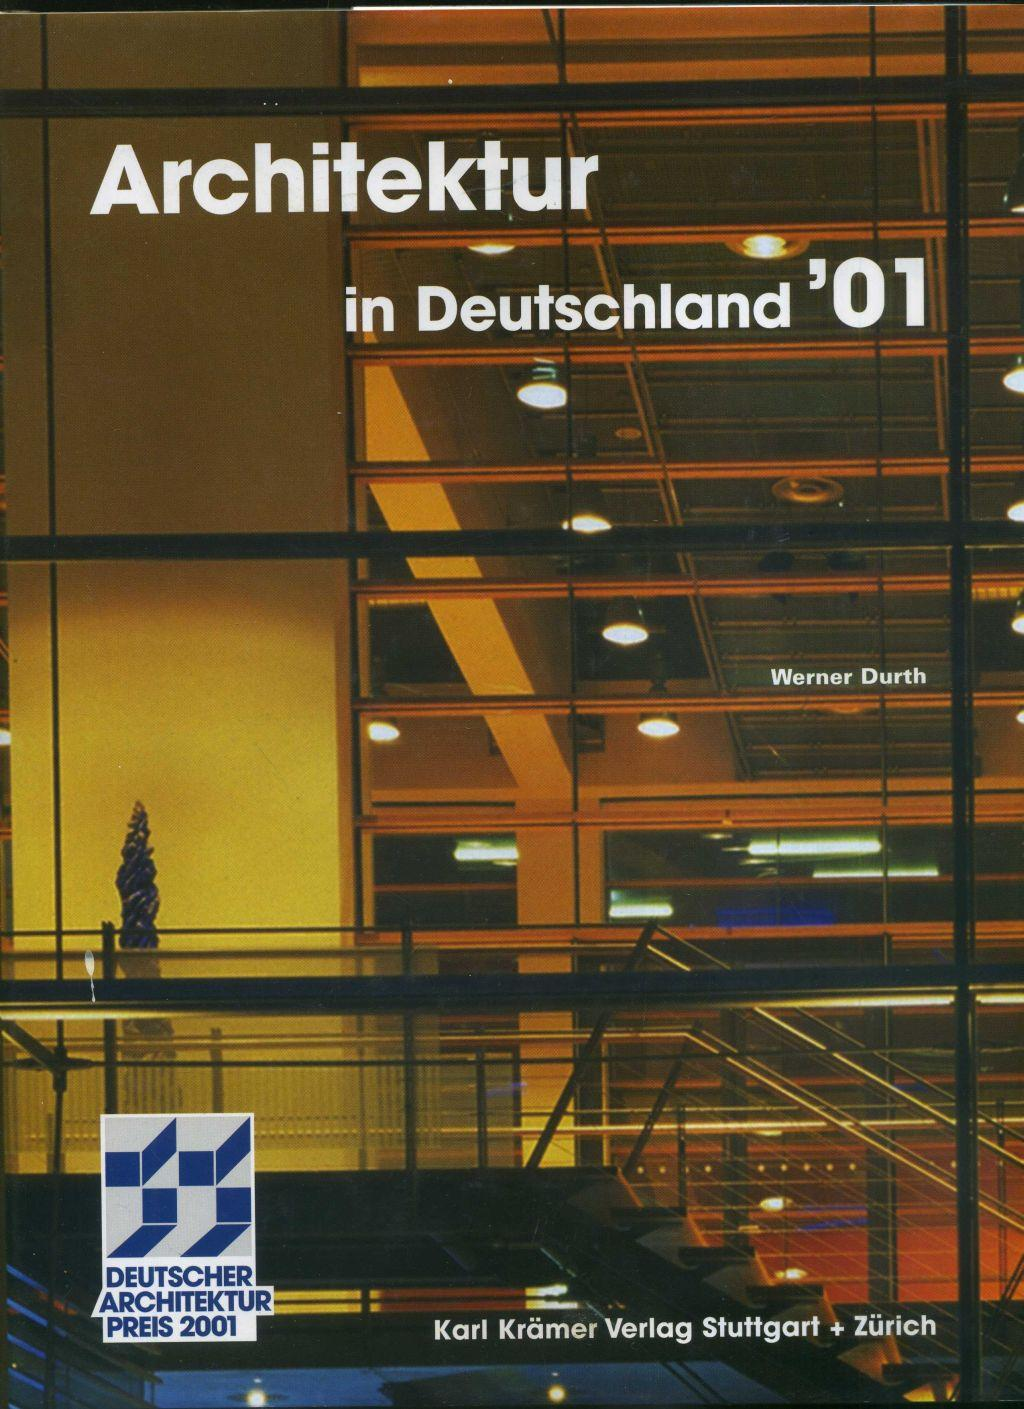 Architektur in Deutschland 01. Deutscher Architekturpreis 2001.: Durth Werner: